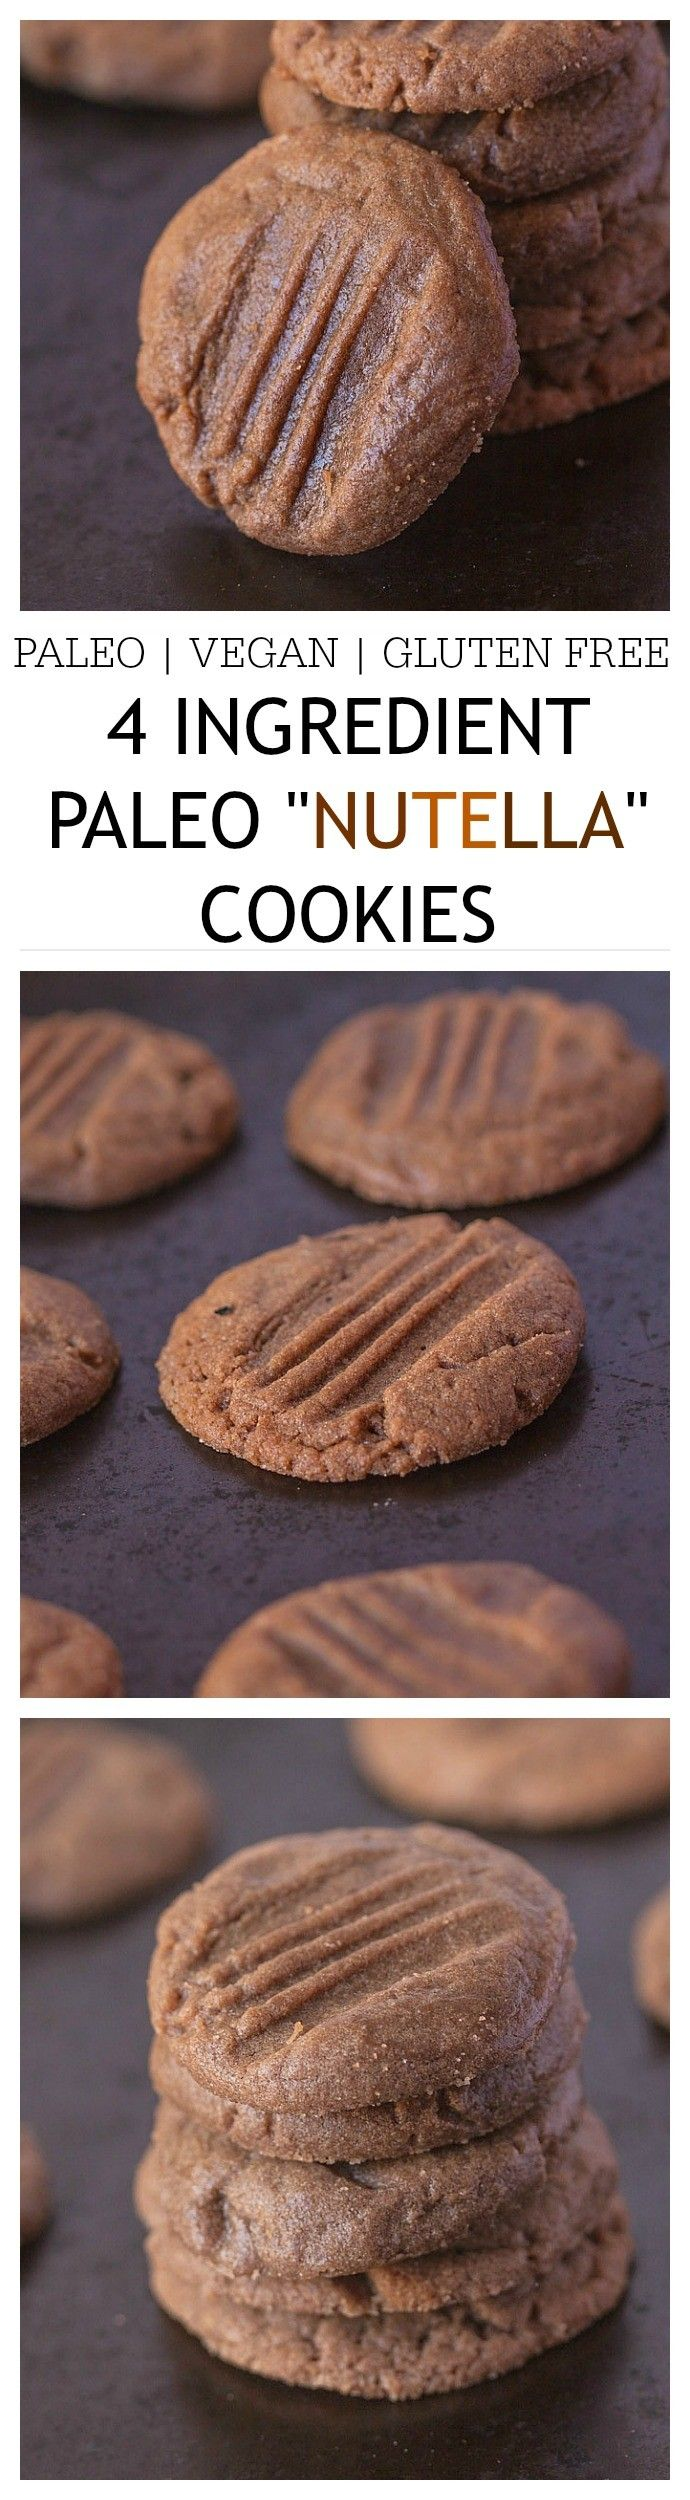 """Healthy 4 Ingredient Paleo """"Nutella"""" Cookies-- 1 bowl, 10 minutes and you'll have chewy, delicious and healthy cookies ready! Paleo, gluten free and a vegan option too! @thebigmansworld - thebigmansworld.com"""